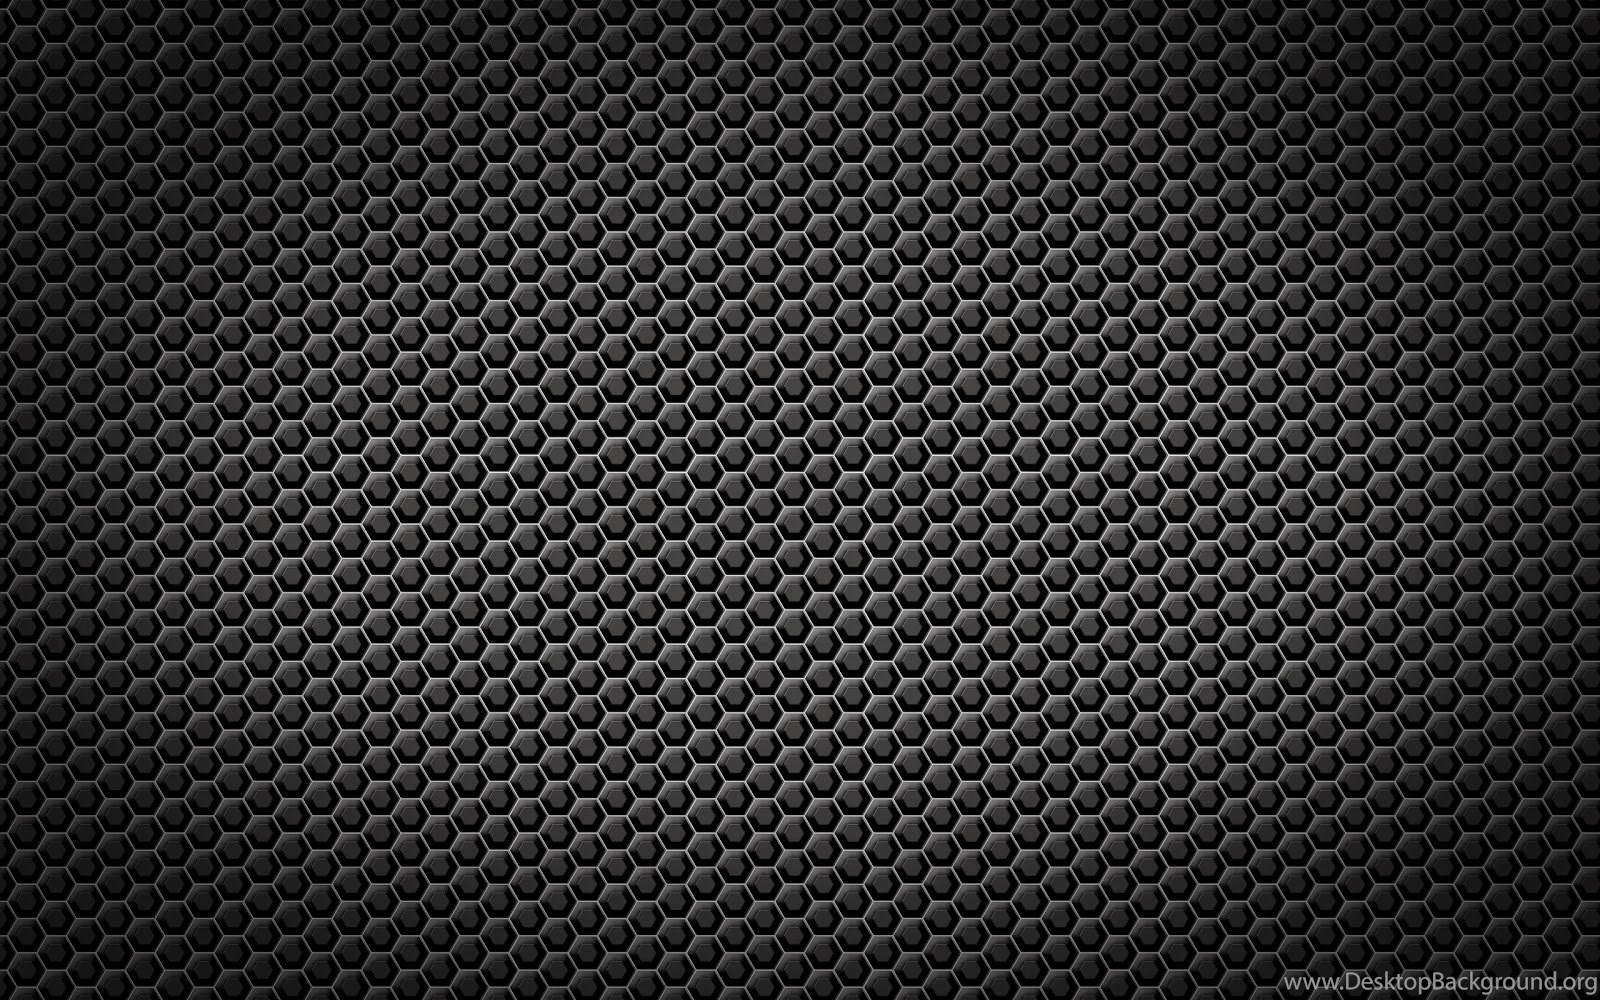 Top 30 high quality free photoshop patterns and textures for Popular wallpaper patterns